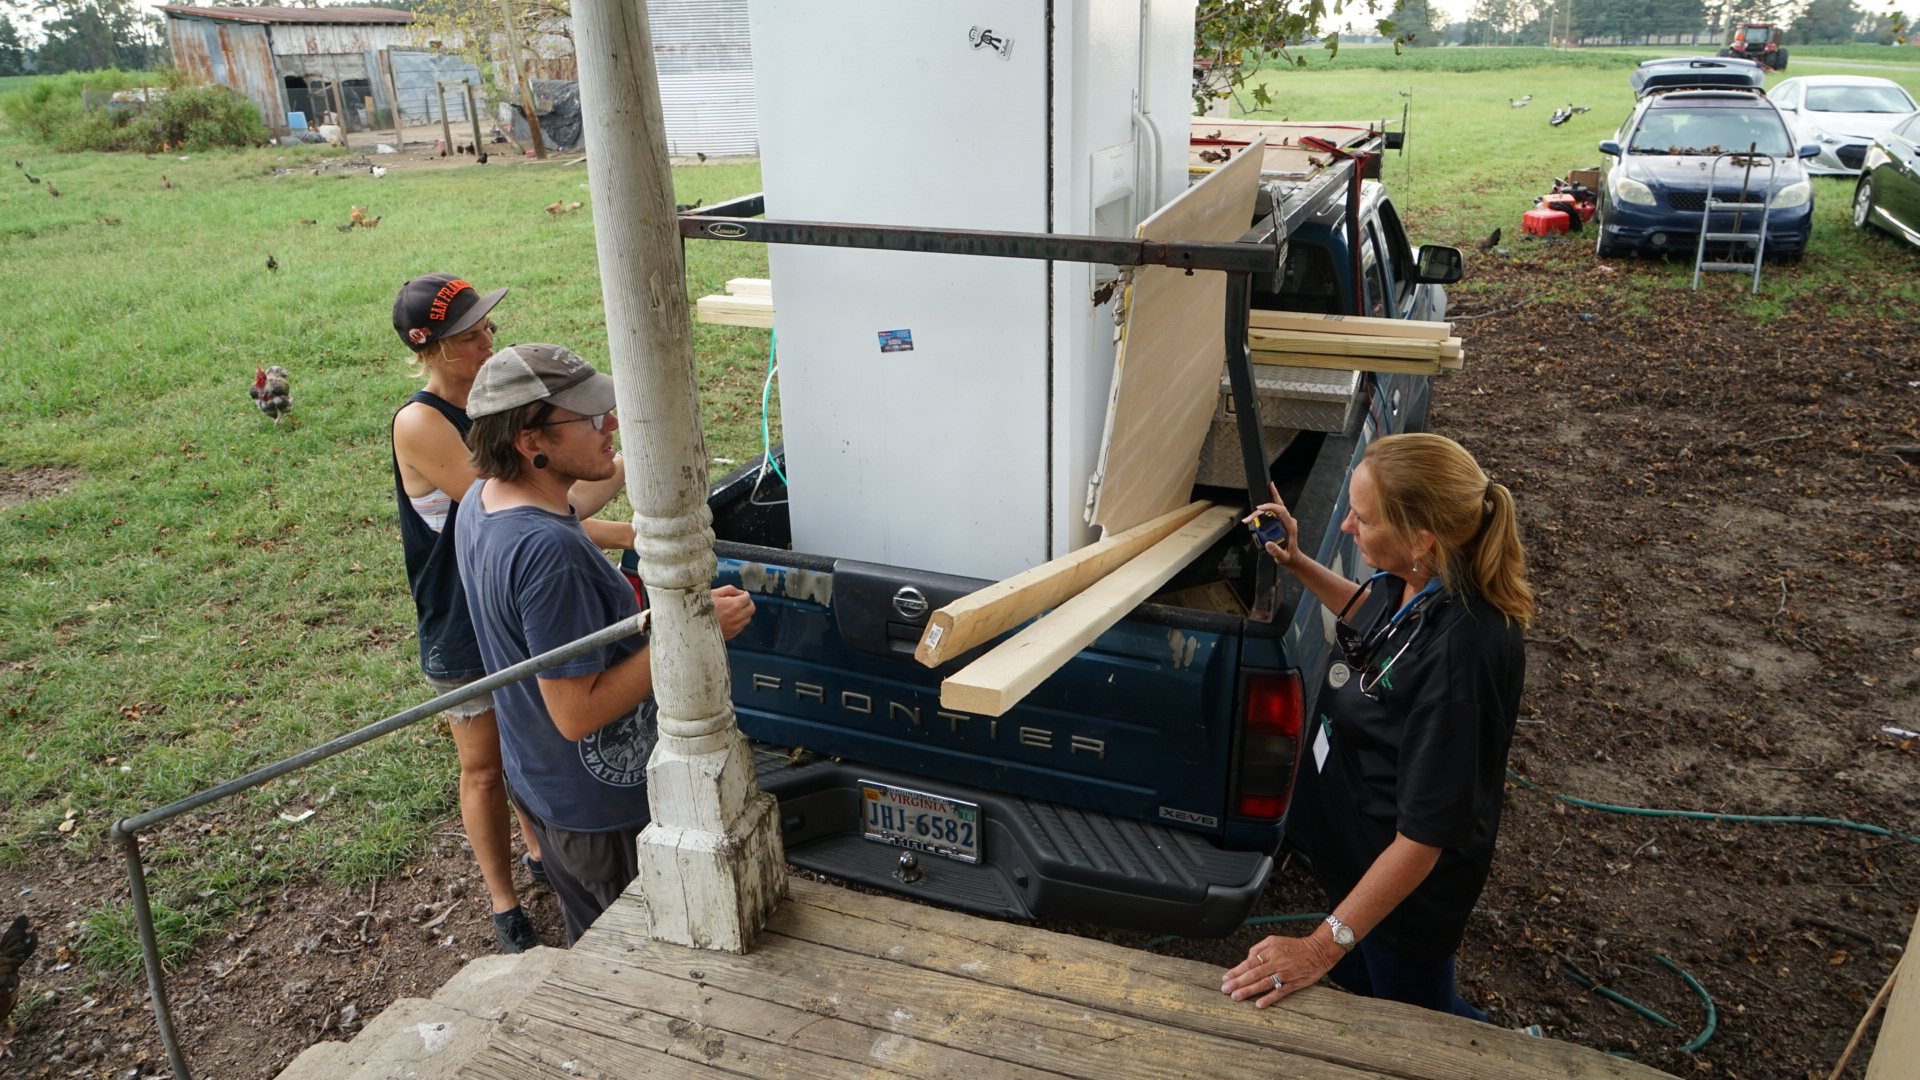 Nurse Gena Byrd (right), who does medical outreach for local farmworkers for Green County Health Care, coordinates with volunteers to move a new refridgerator into the home of an elderly patient in Snow Hill, North Carolina. Byrd often goes above and beyond for local patients. (Lara Cooper/Direct Relief)